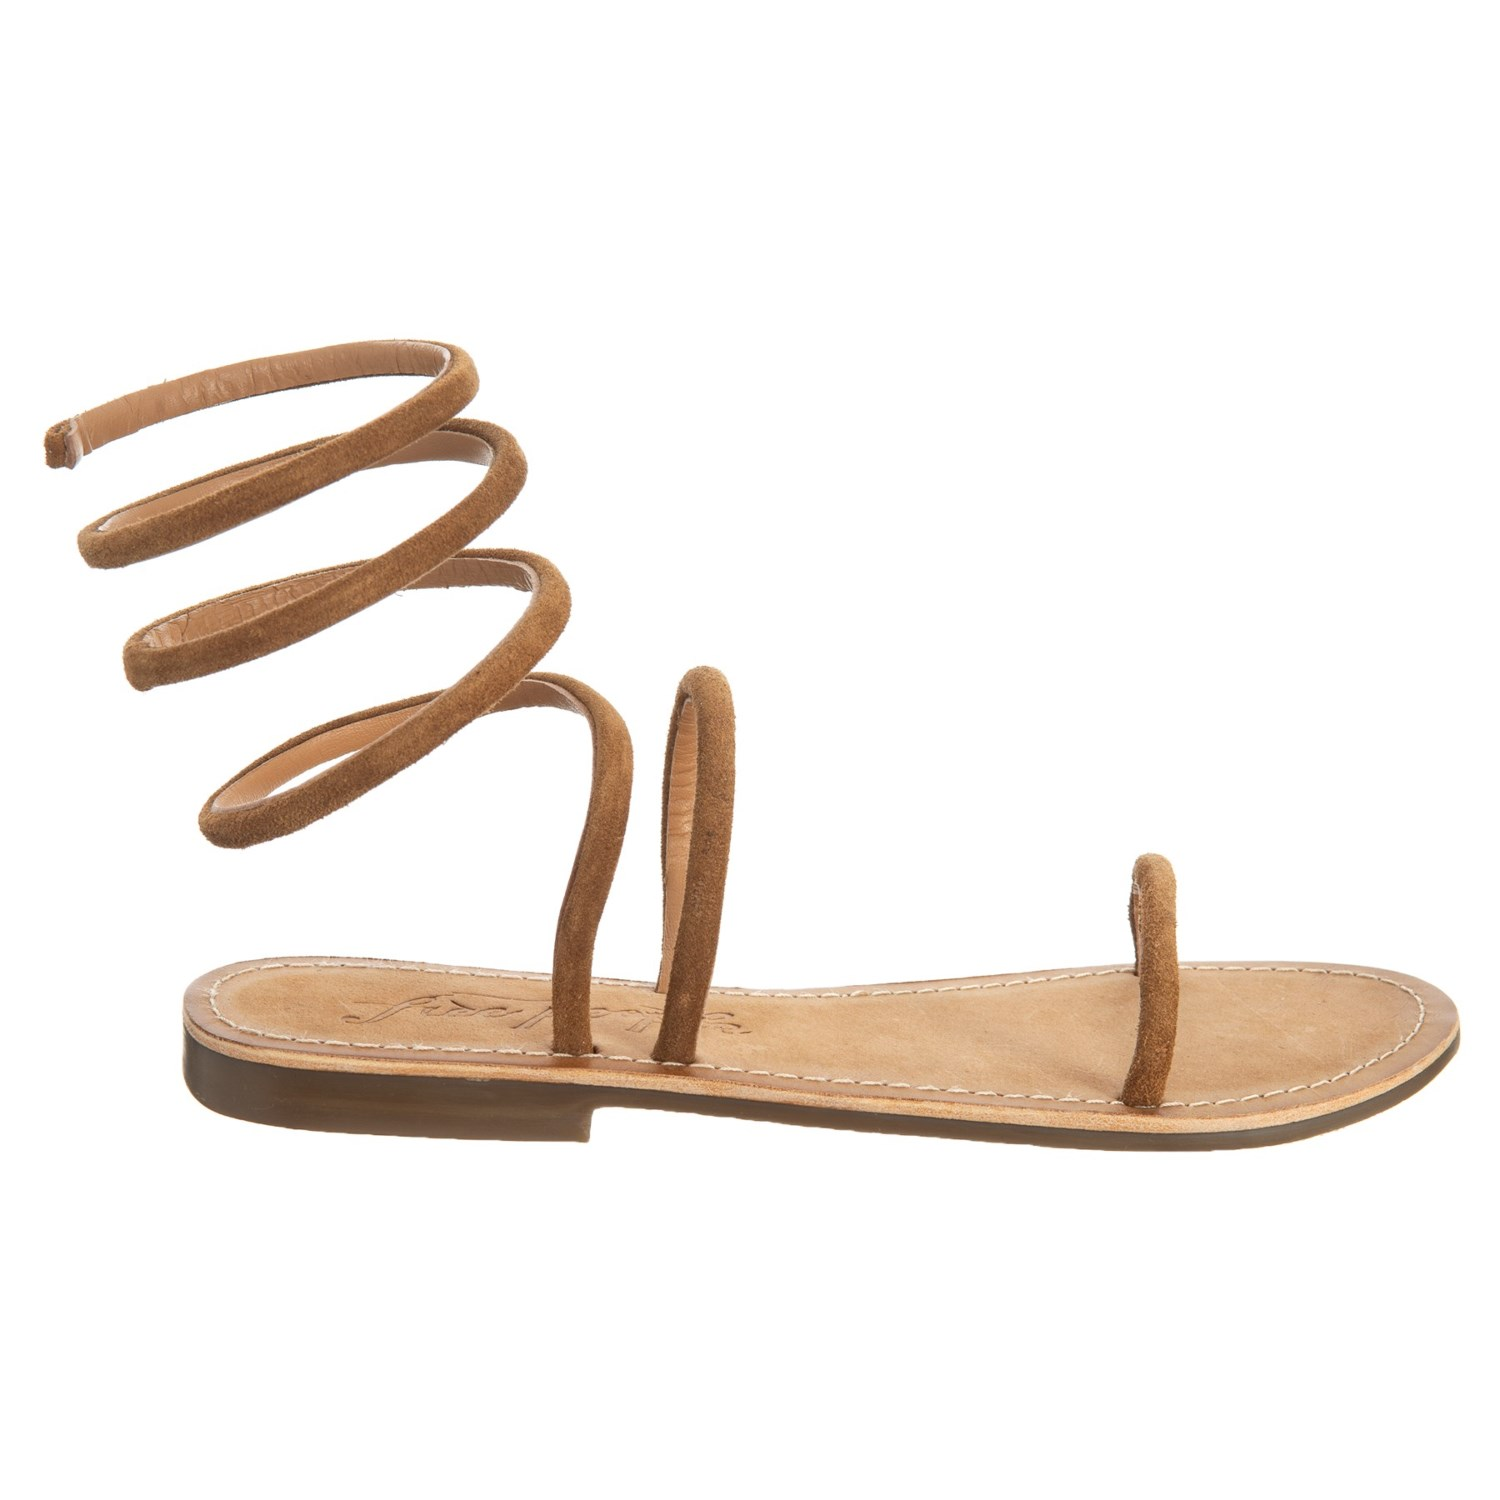 3d0b3dc16 Free People Havana Gladiator Sandals (For Women) - Save 25%